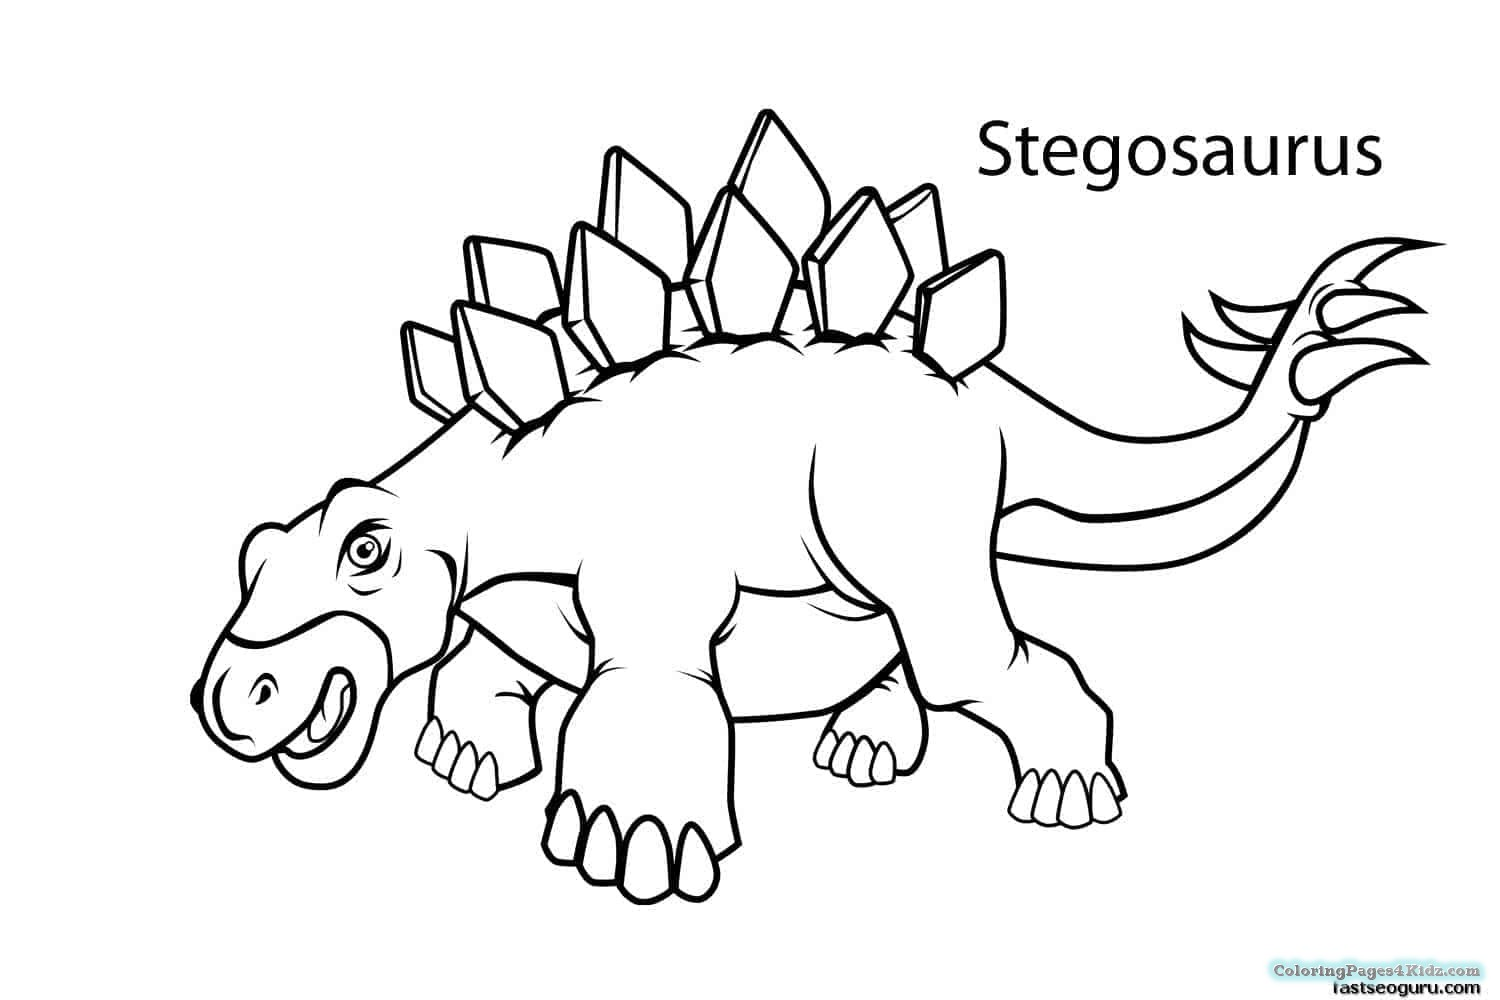 meat eating dinosaur coloring pages meat eating dinosaurs coloring pages t rex coloring eating coloring meat pages dinosaur